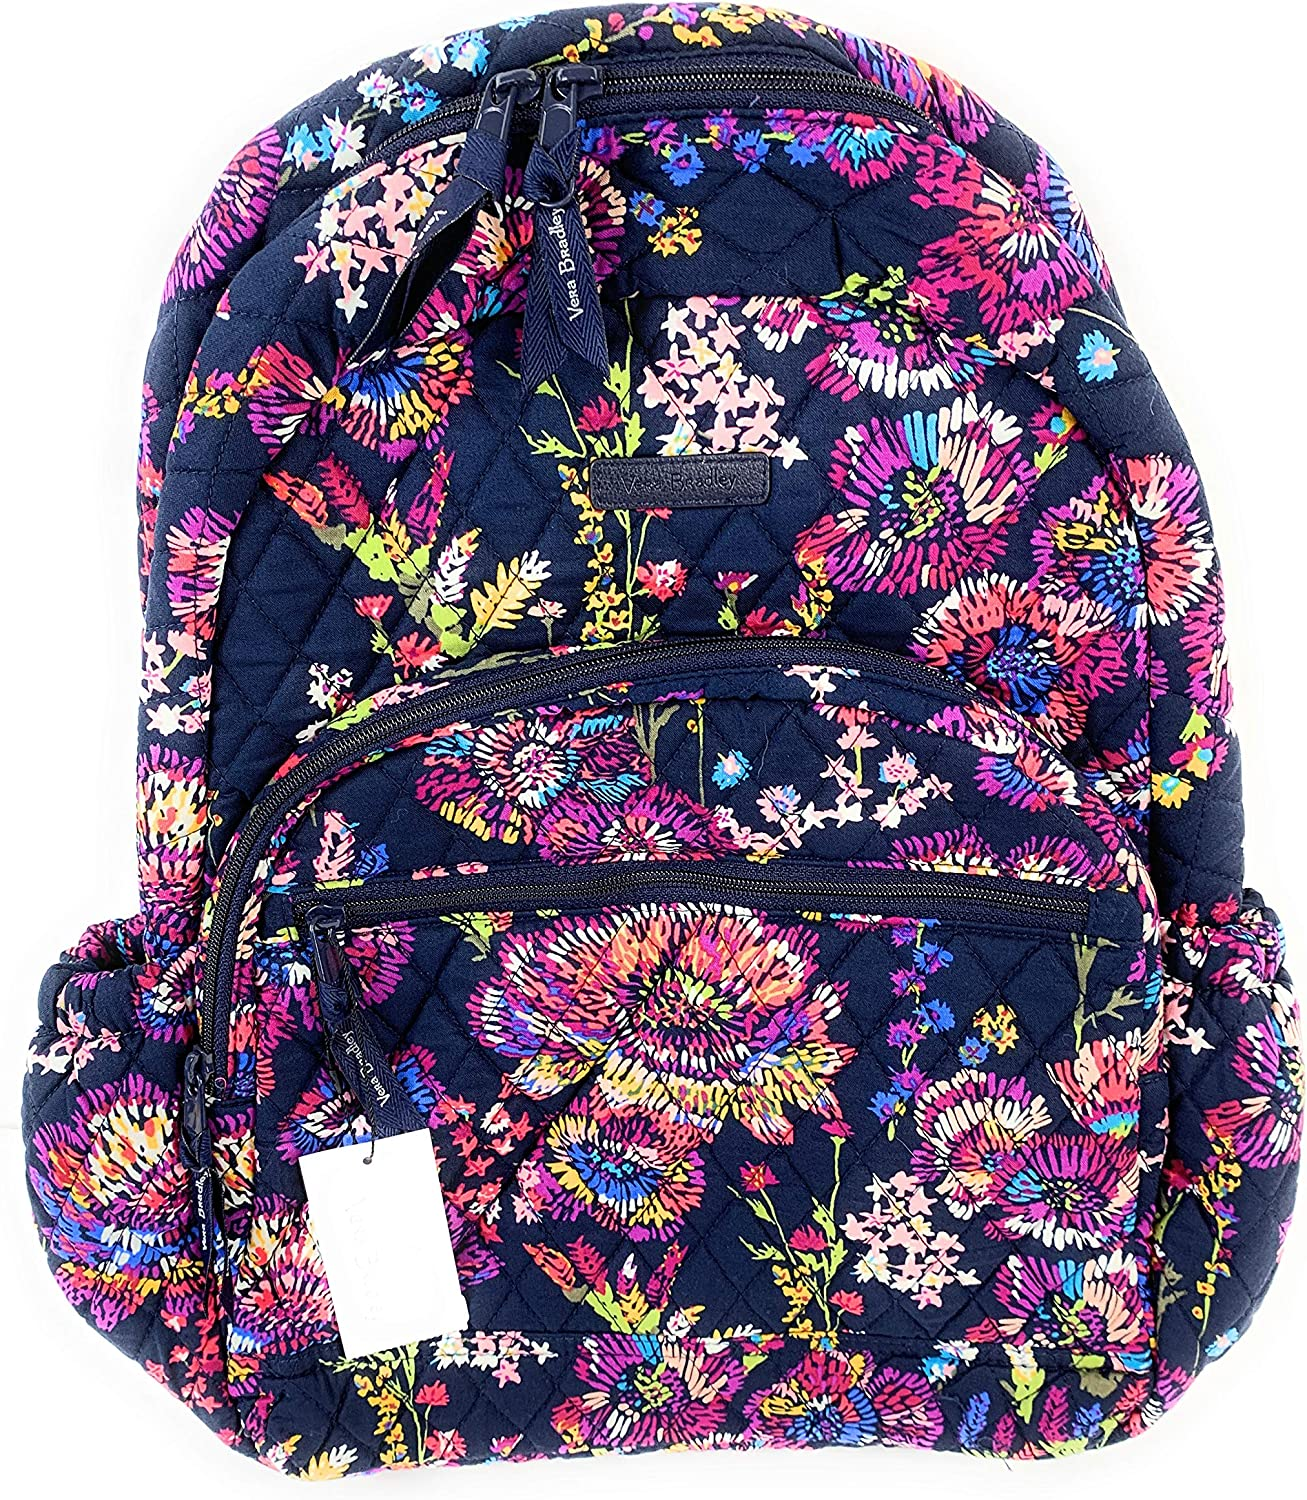 Vera Bradley Essential Backpack Quilted Cotton Midnight Wildflowers